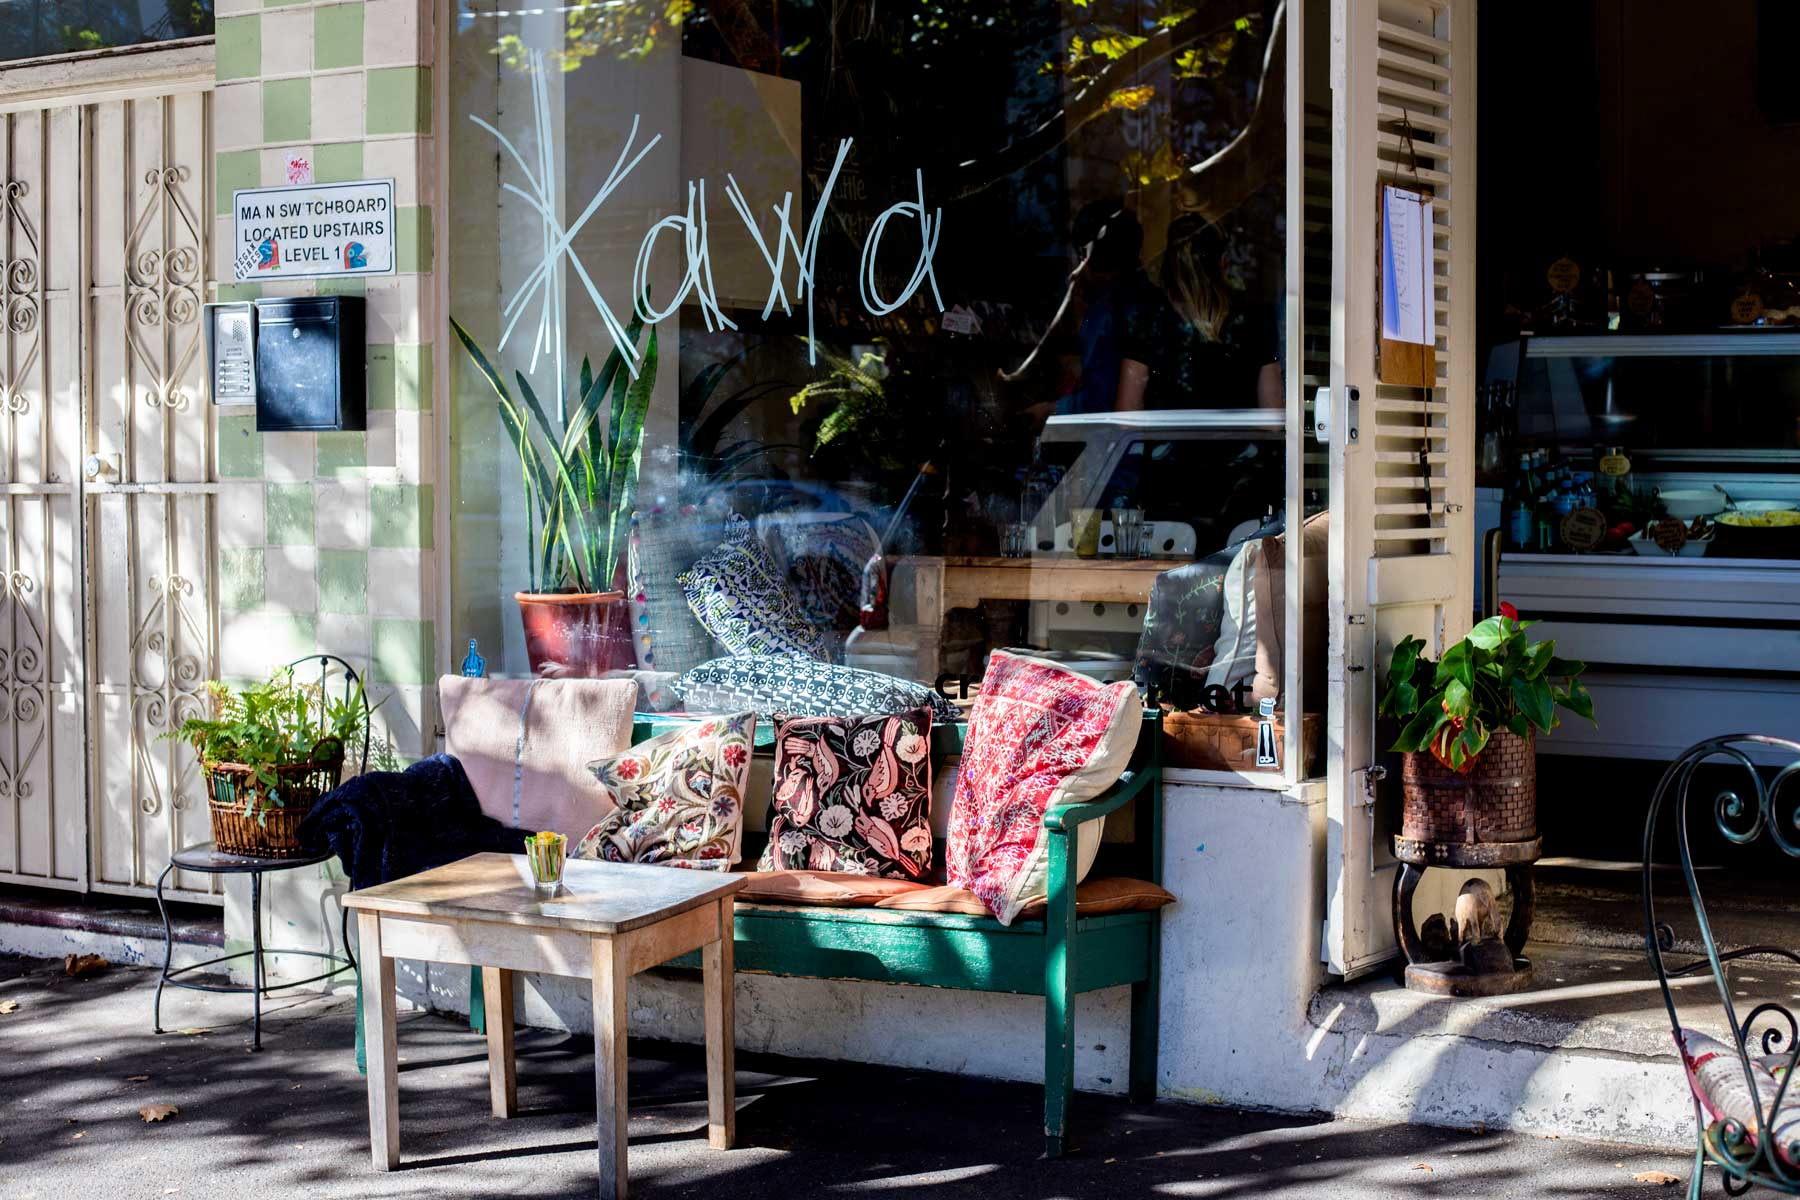 Kawa - Superbly cosy, Kawa has transformed a residential, heritage home, into a perfect village cafe and juice bar. With polished wooden floors, sun-drenched seating, plenty of cushions and quirky trinkets and decorations, Kawa offers sweetness both in its excellent brunch menu and aesthetic.346-350 Crown Street, Surry Hills